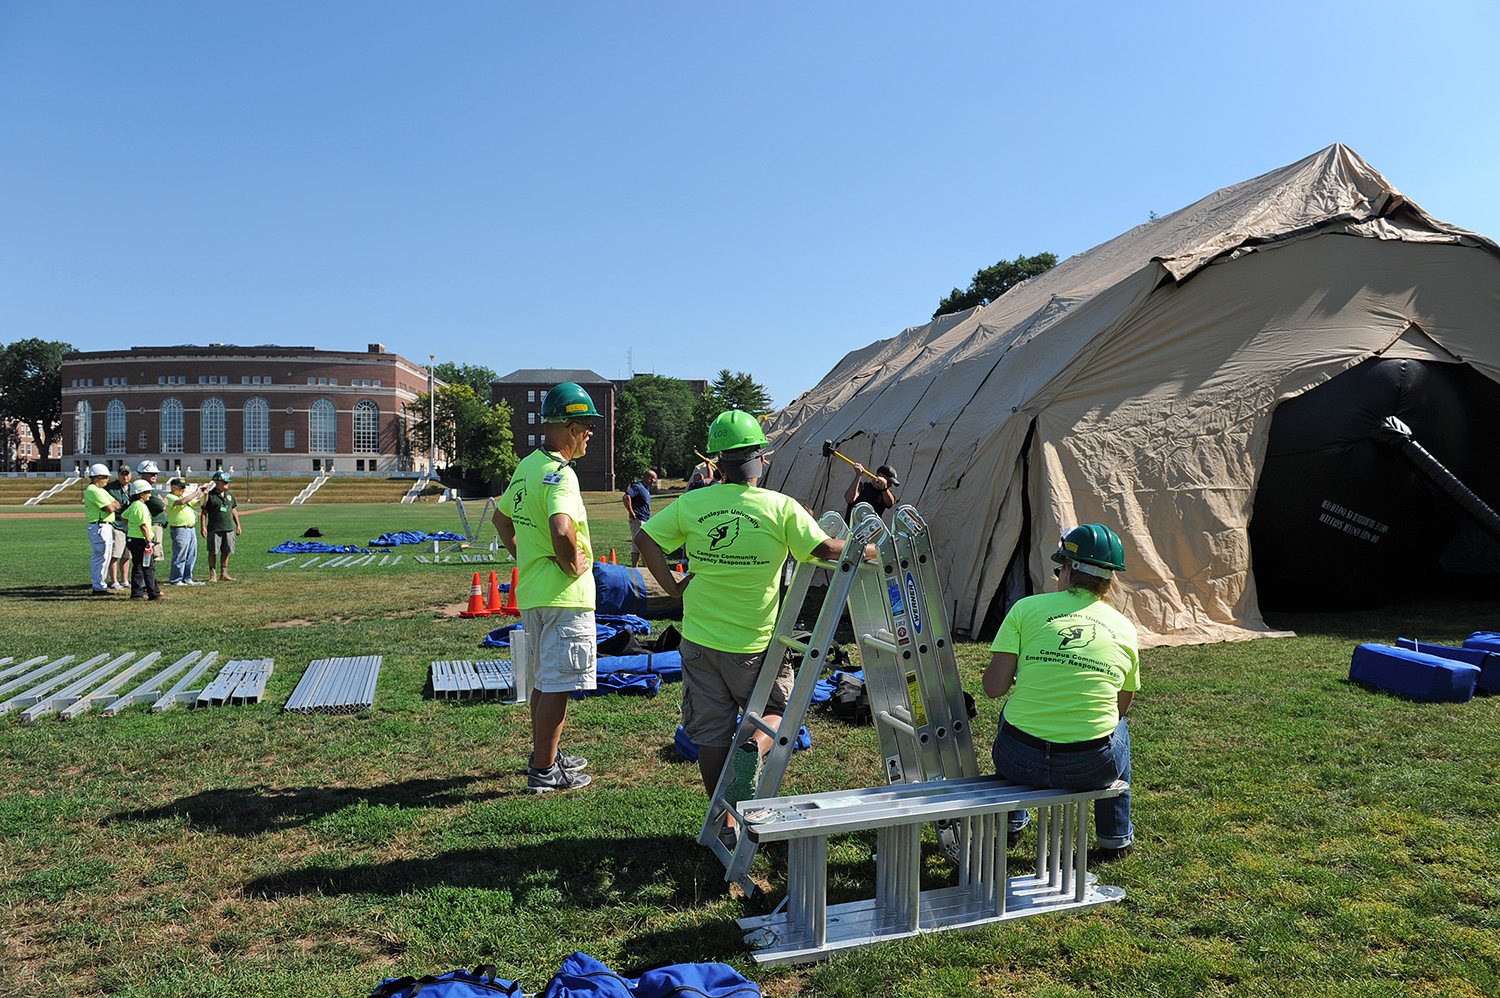 On Aug. 3, more than 20 Wesleyan employees helped erect a tent that could be used as a mobile hospital in the event of an emergency situation. Members of Wesleyan's Campus Community Emergency Response Team (C-CERT) constructed the mobile unit with guidance from Middletown Emergency Management and Middletown Fire Department.